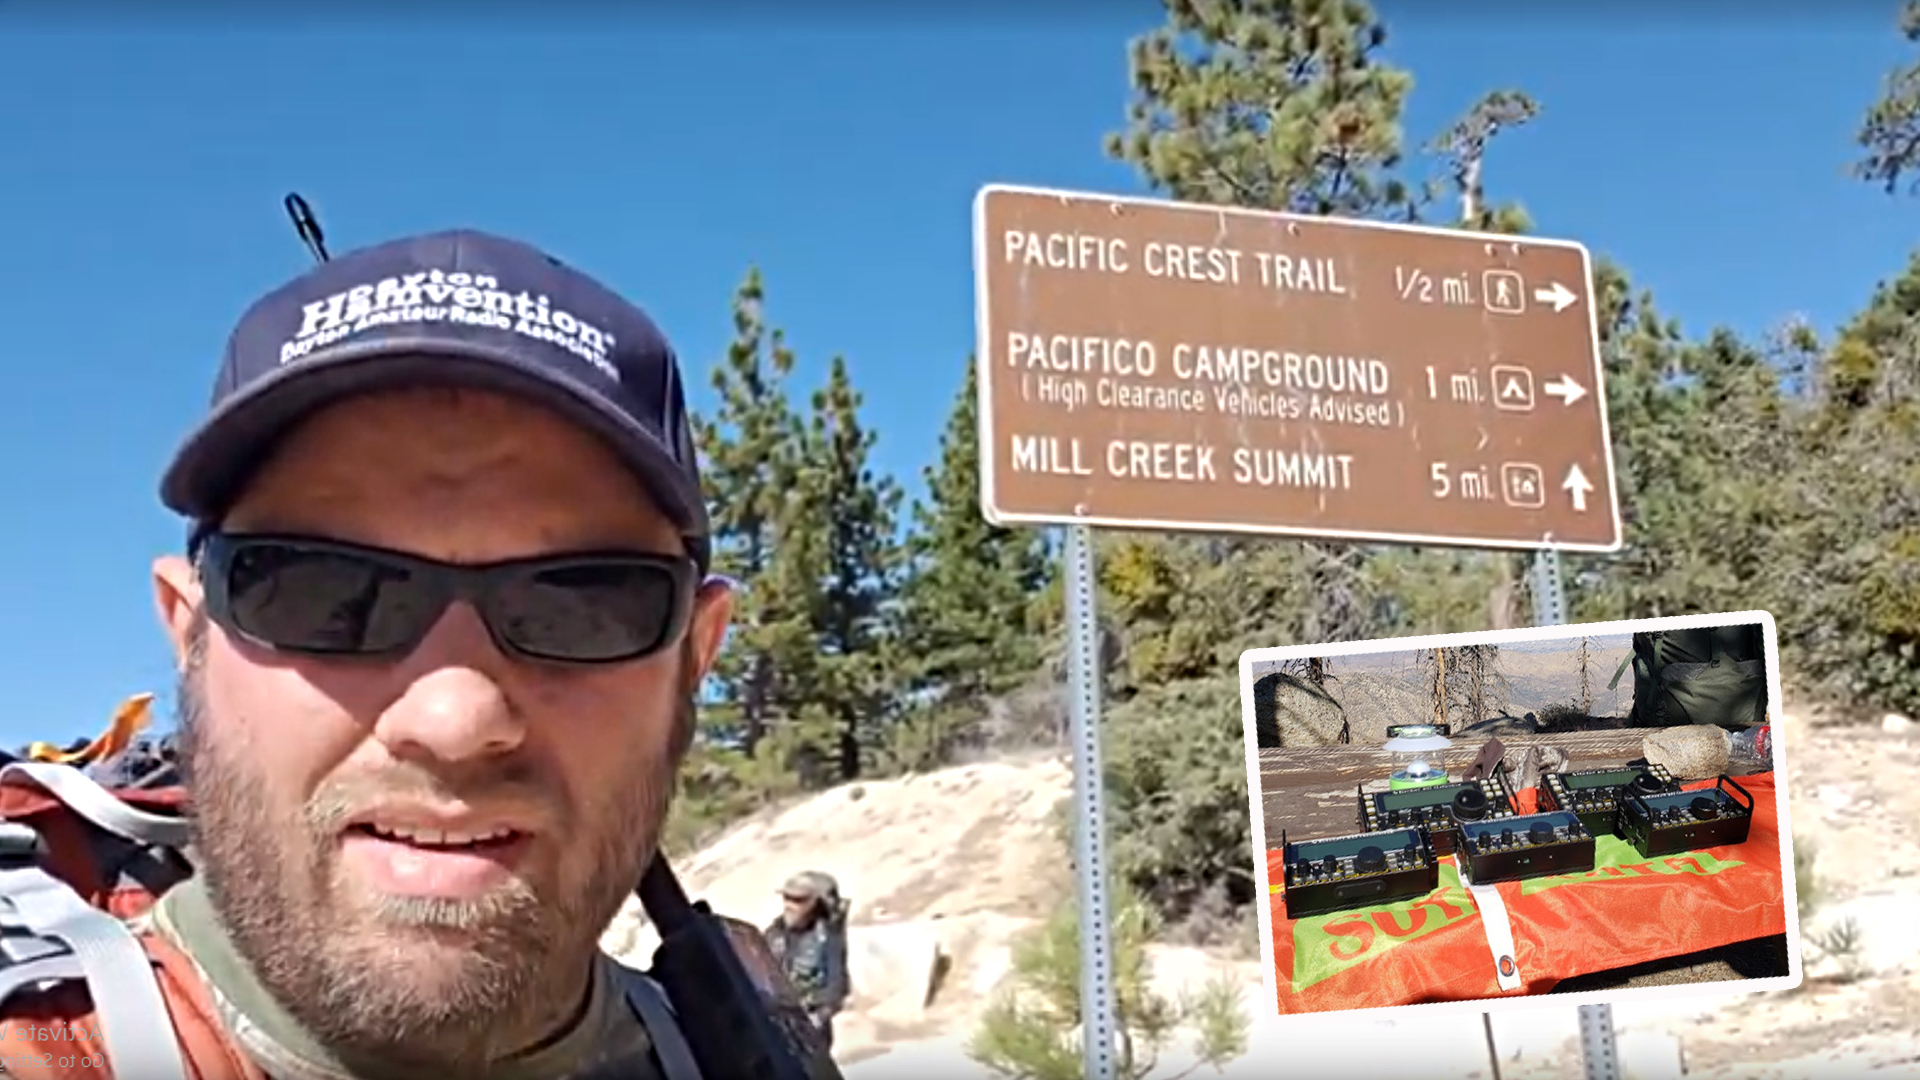 Episode 262: My First SOTA Expedition   Mount Pacifico